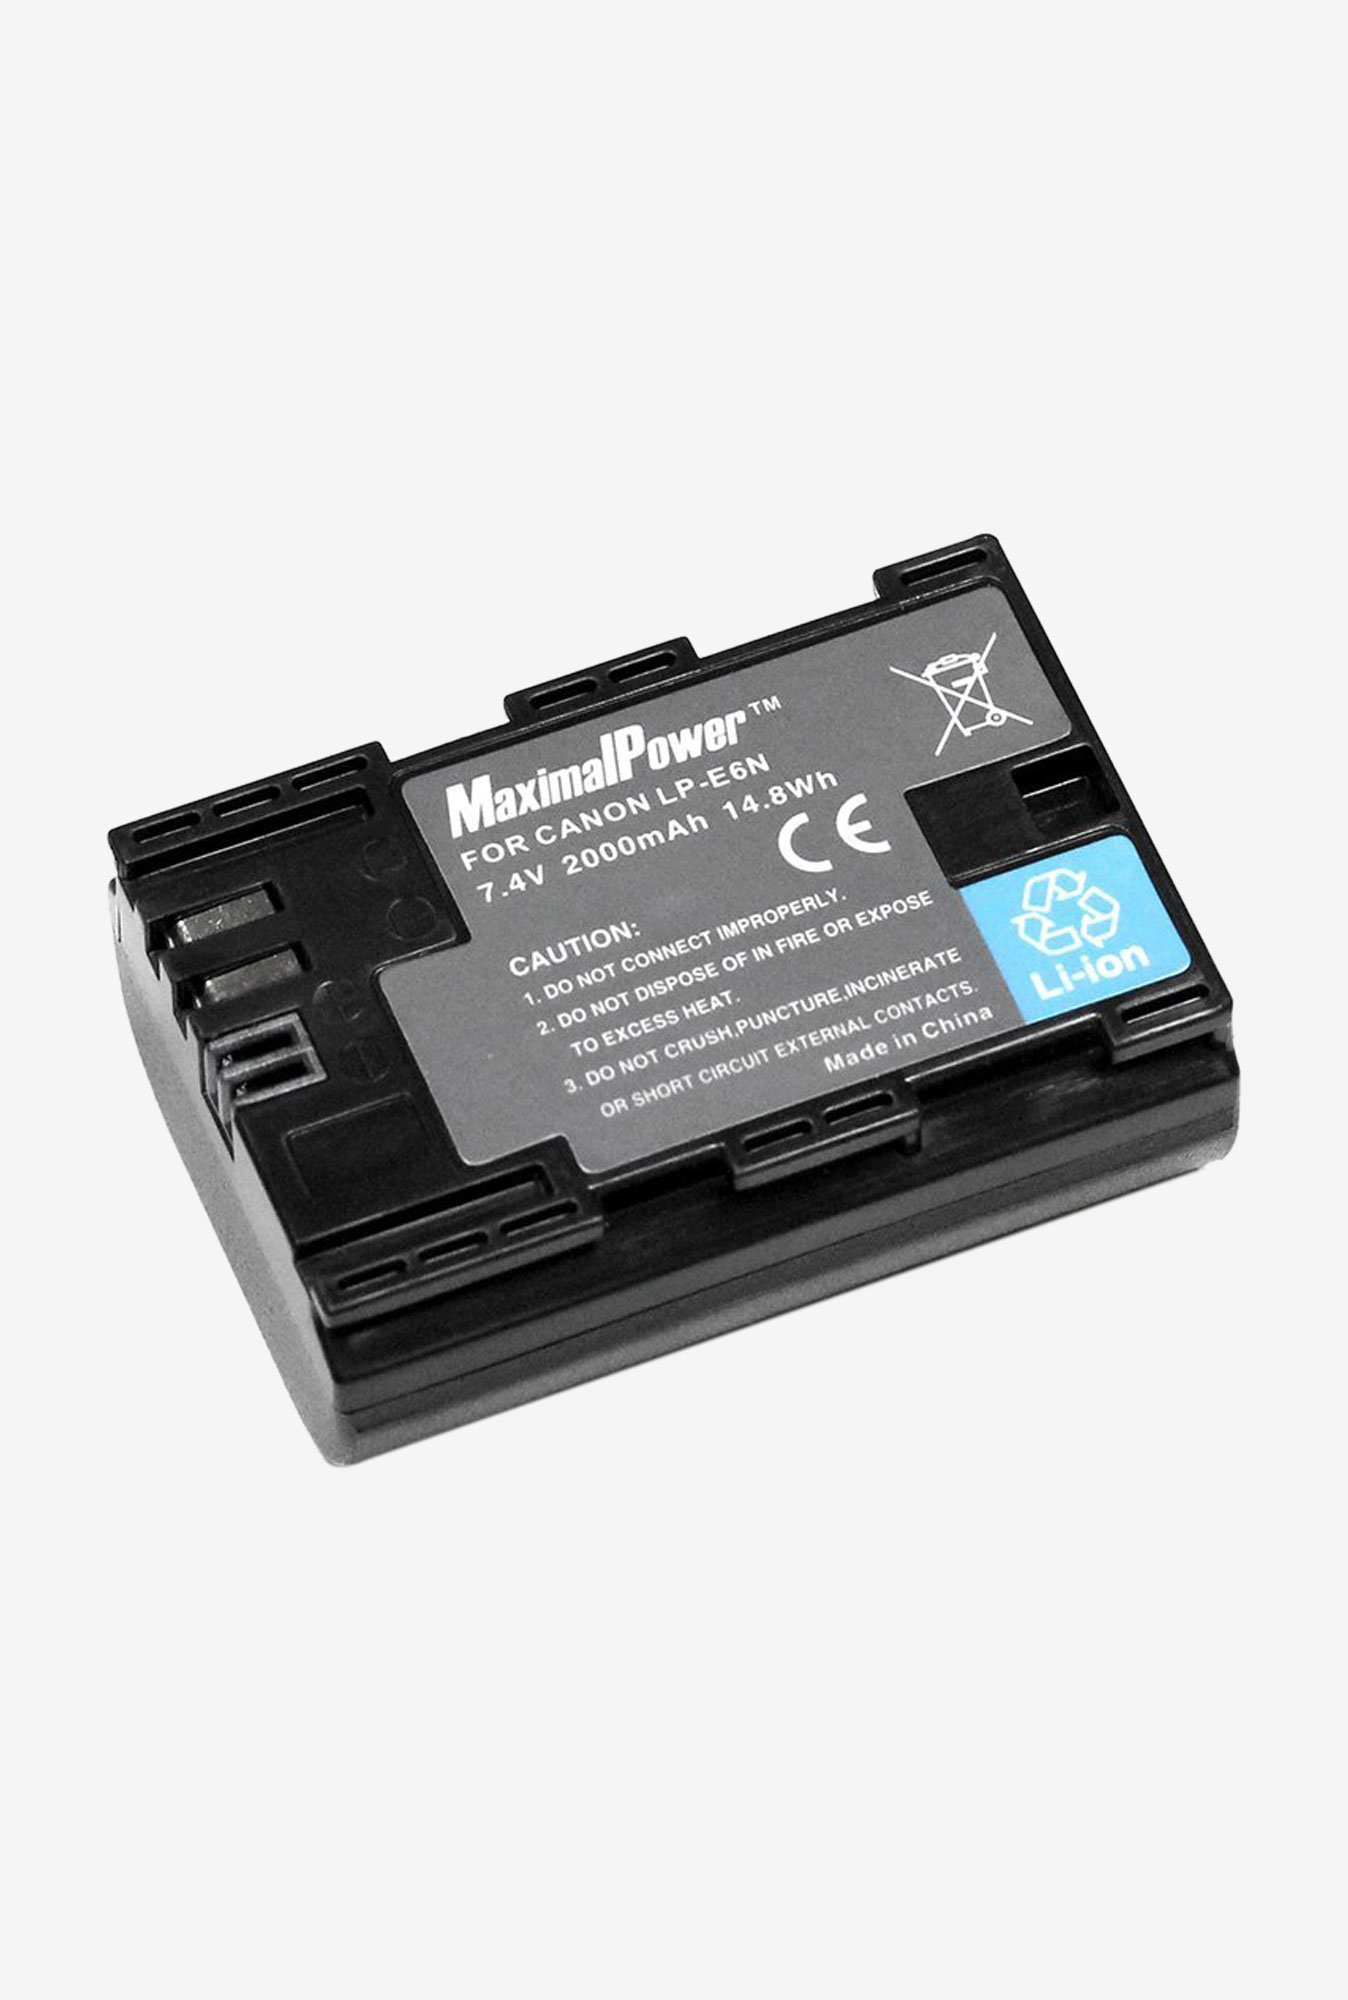 Maximal Power Db Can Lp-E6 Rechargeable Replacement Li-Ion Battery For Canon Cameras - Black